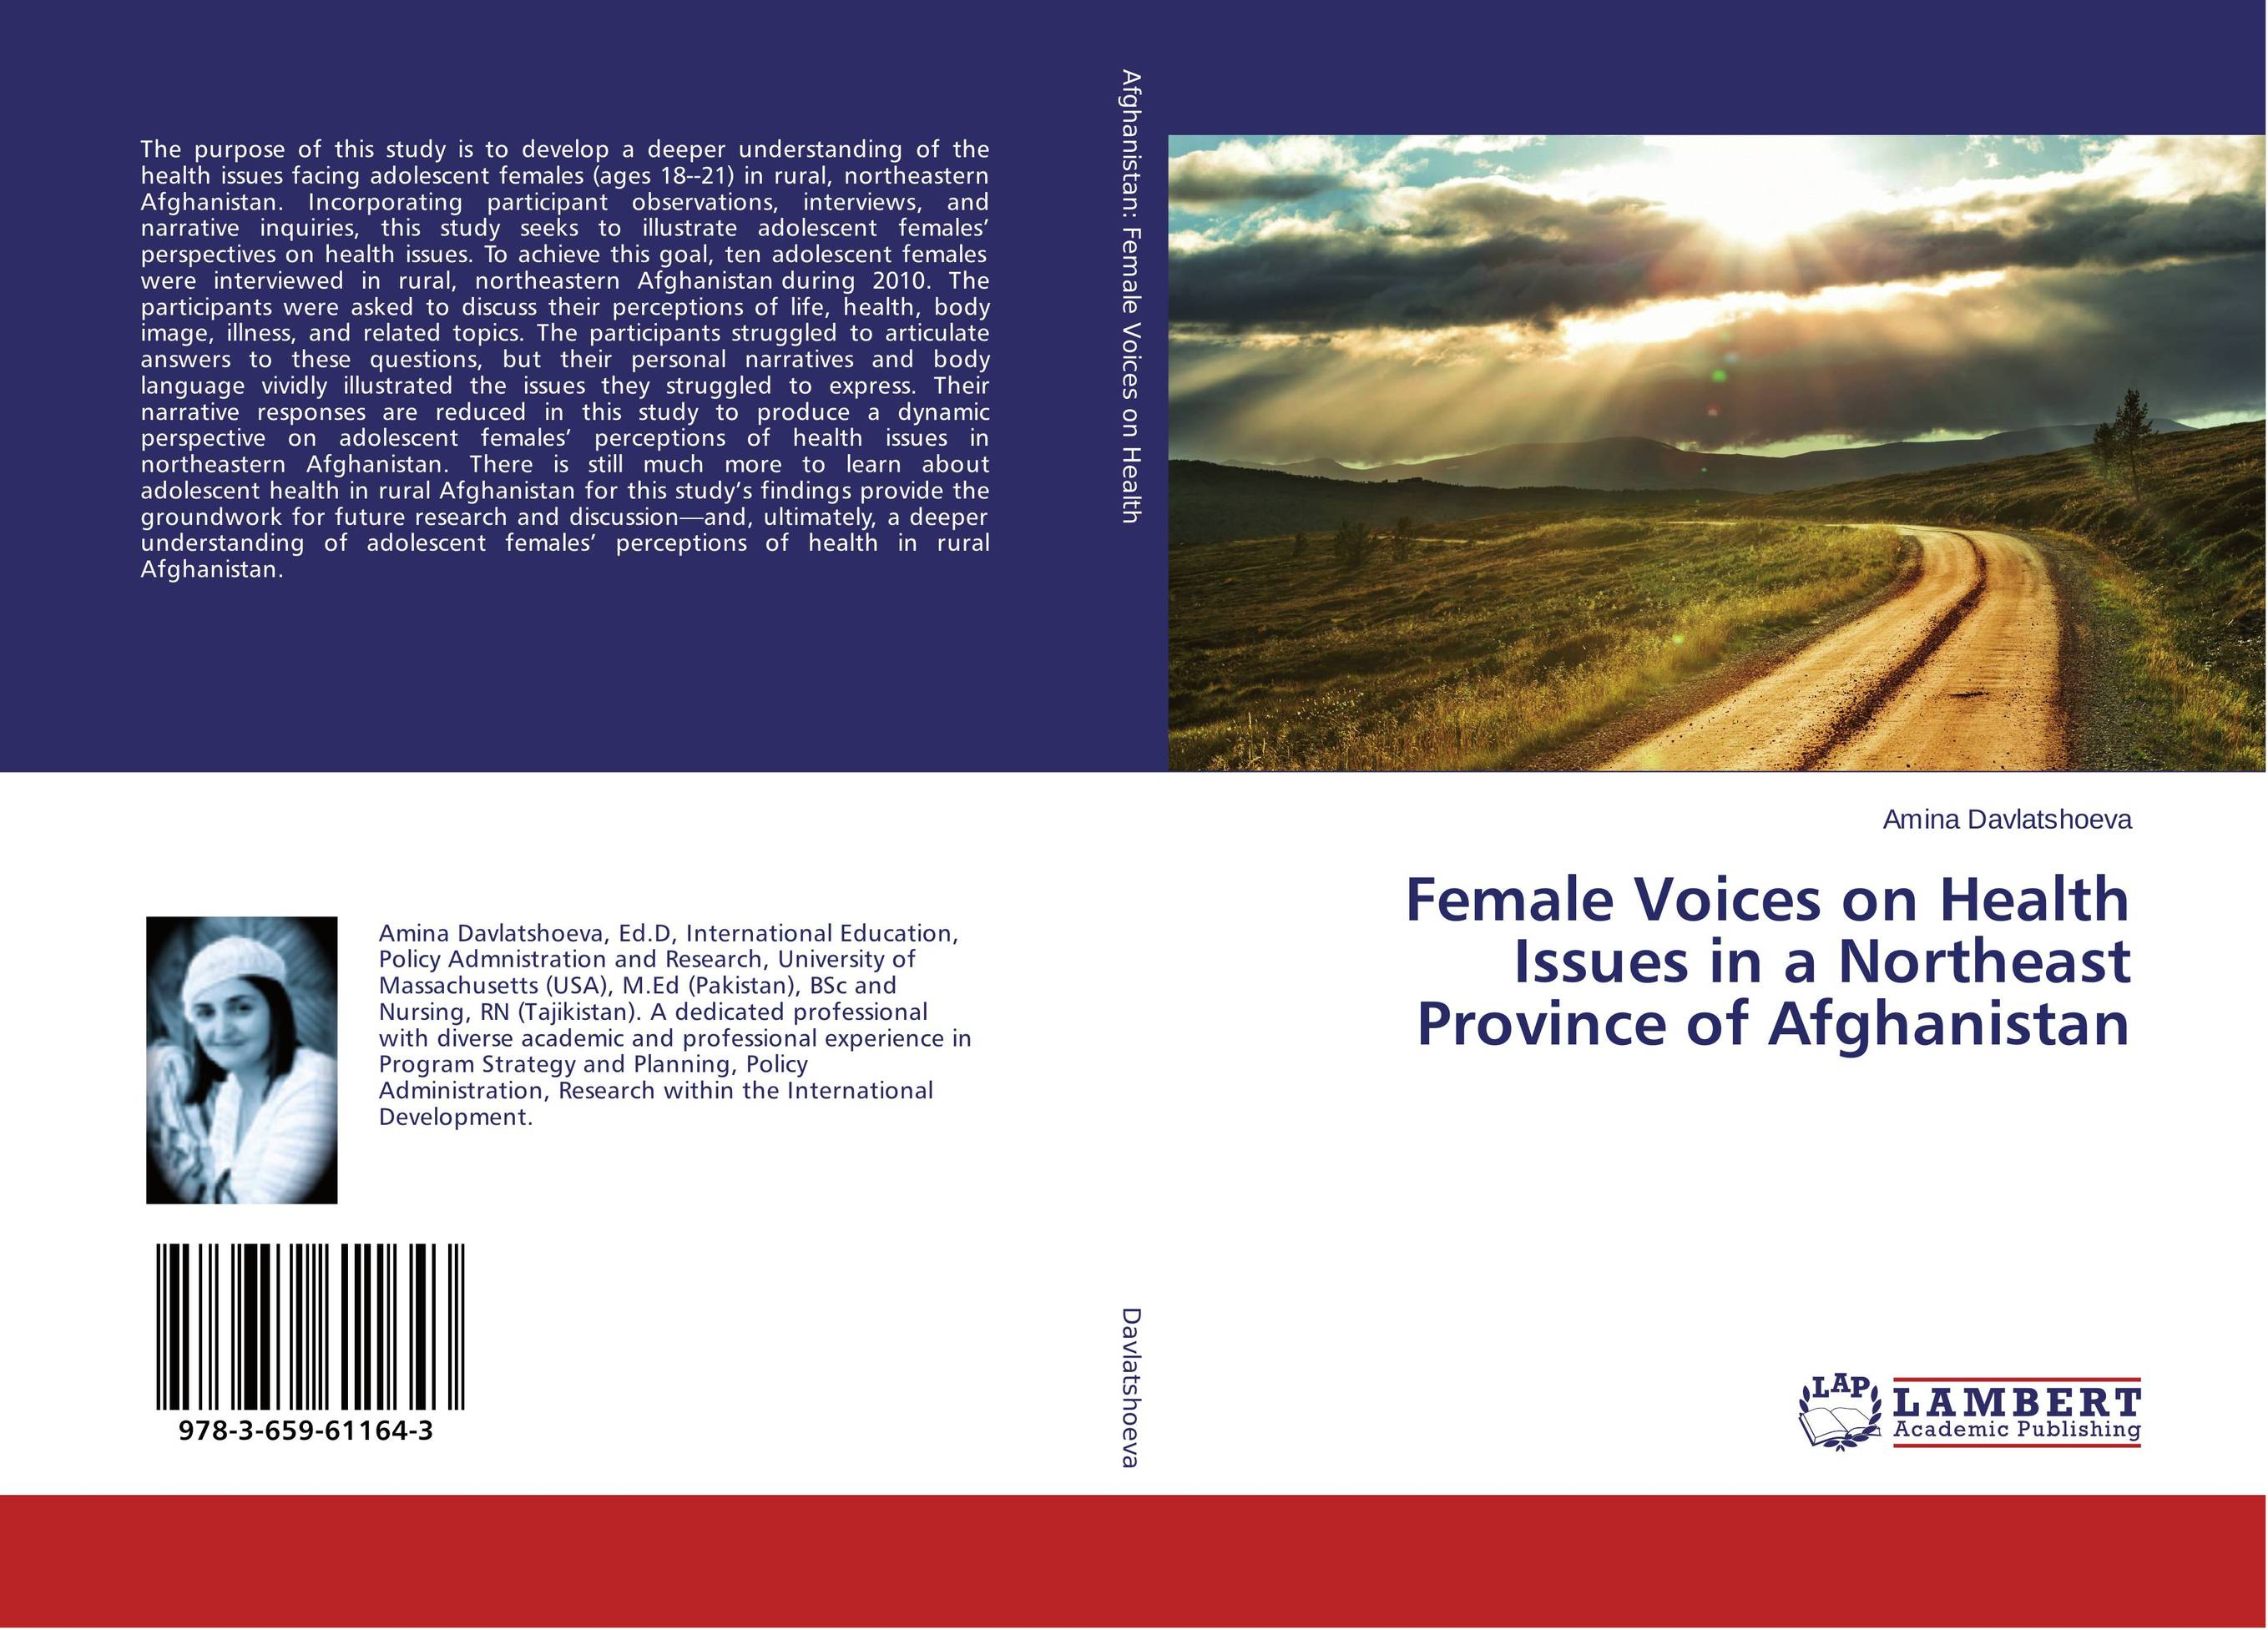 Female Voices on Health Issues in a Northeast Province of Afghanistan